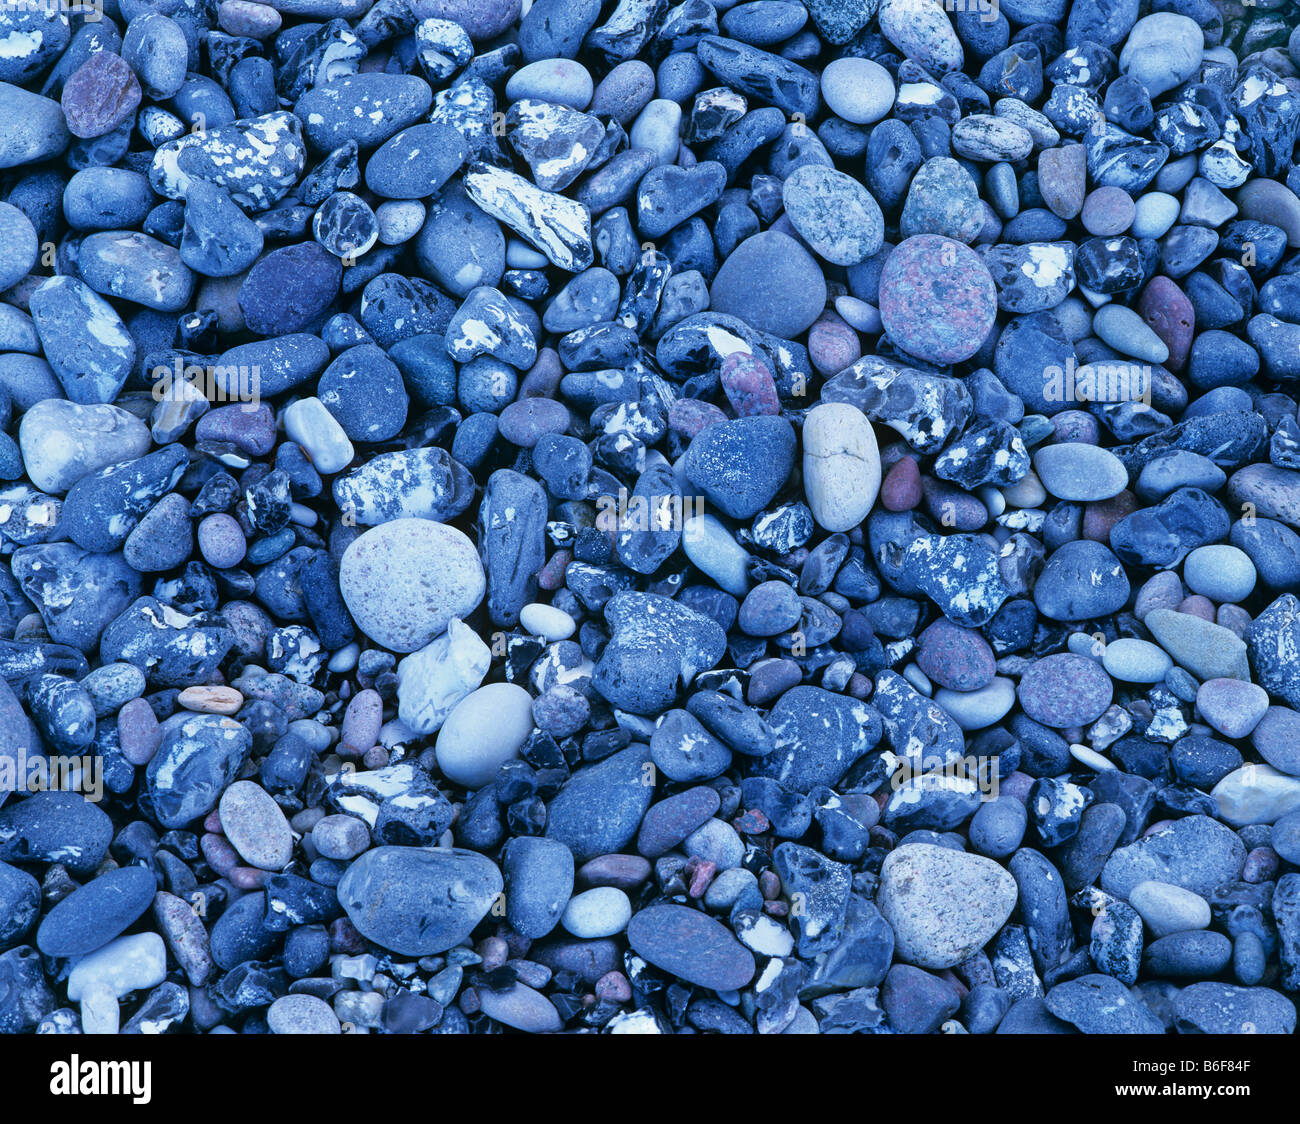 Bluish flint stones and pebbles from the Baltic Sea beach - Stock Image